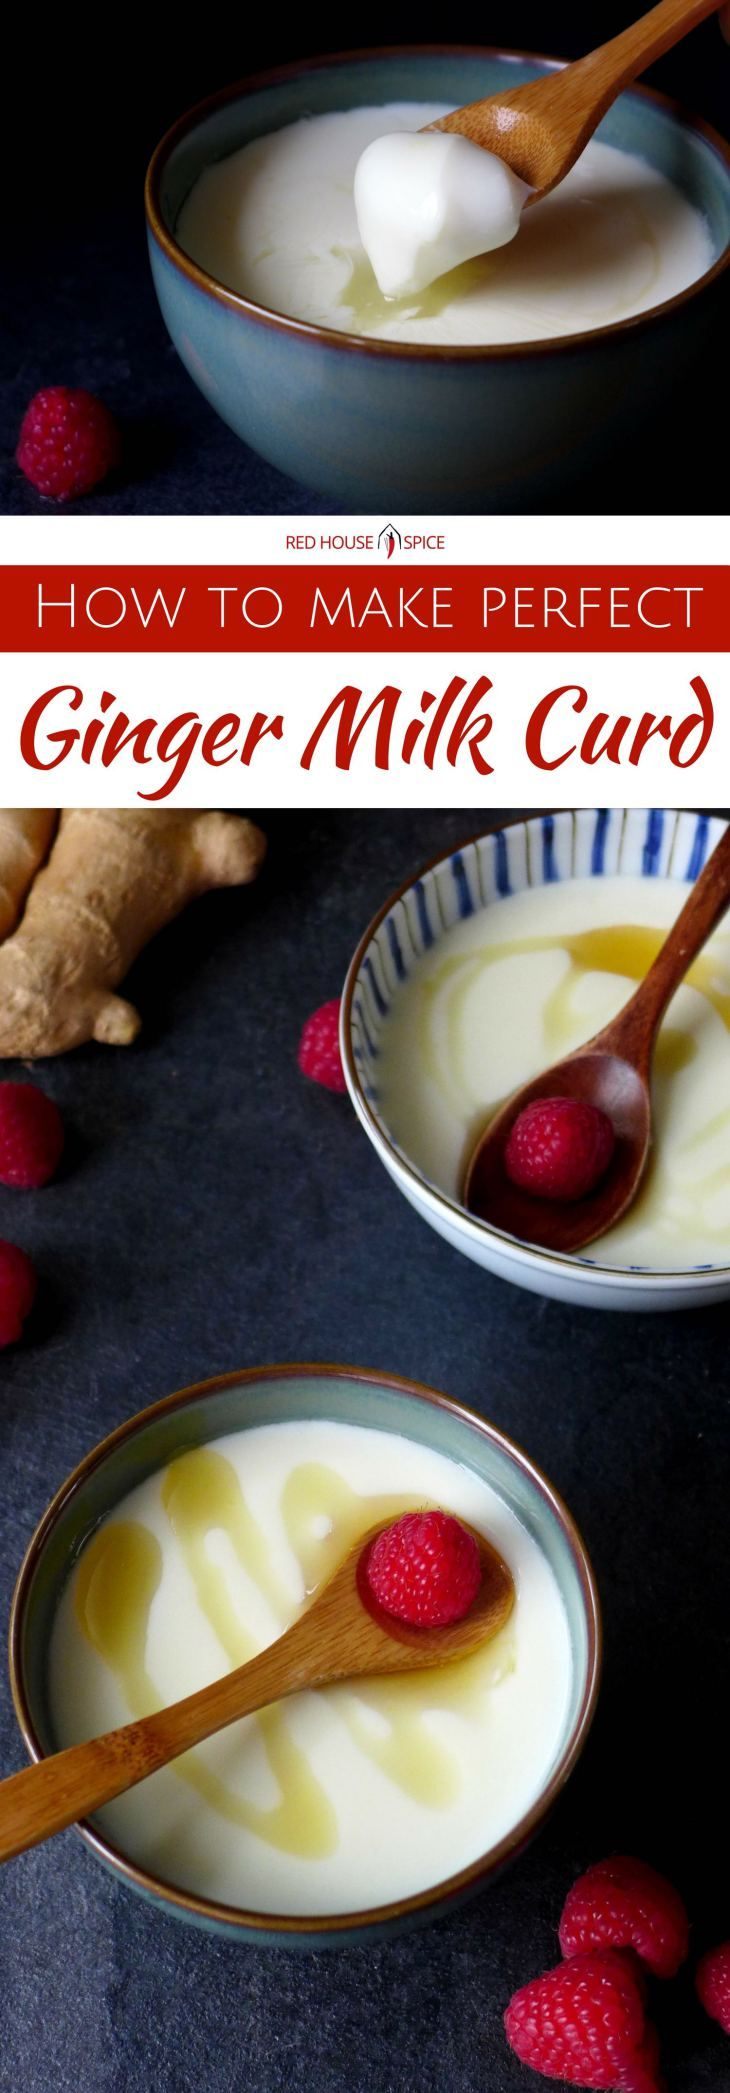 A tried and tested recipe for making perfect ginger milk curd, a popular Cantonese dessert with an interesting flavour and silky texture.